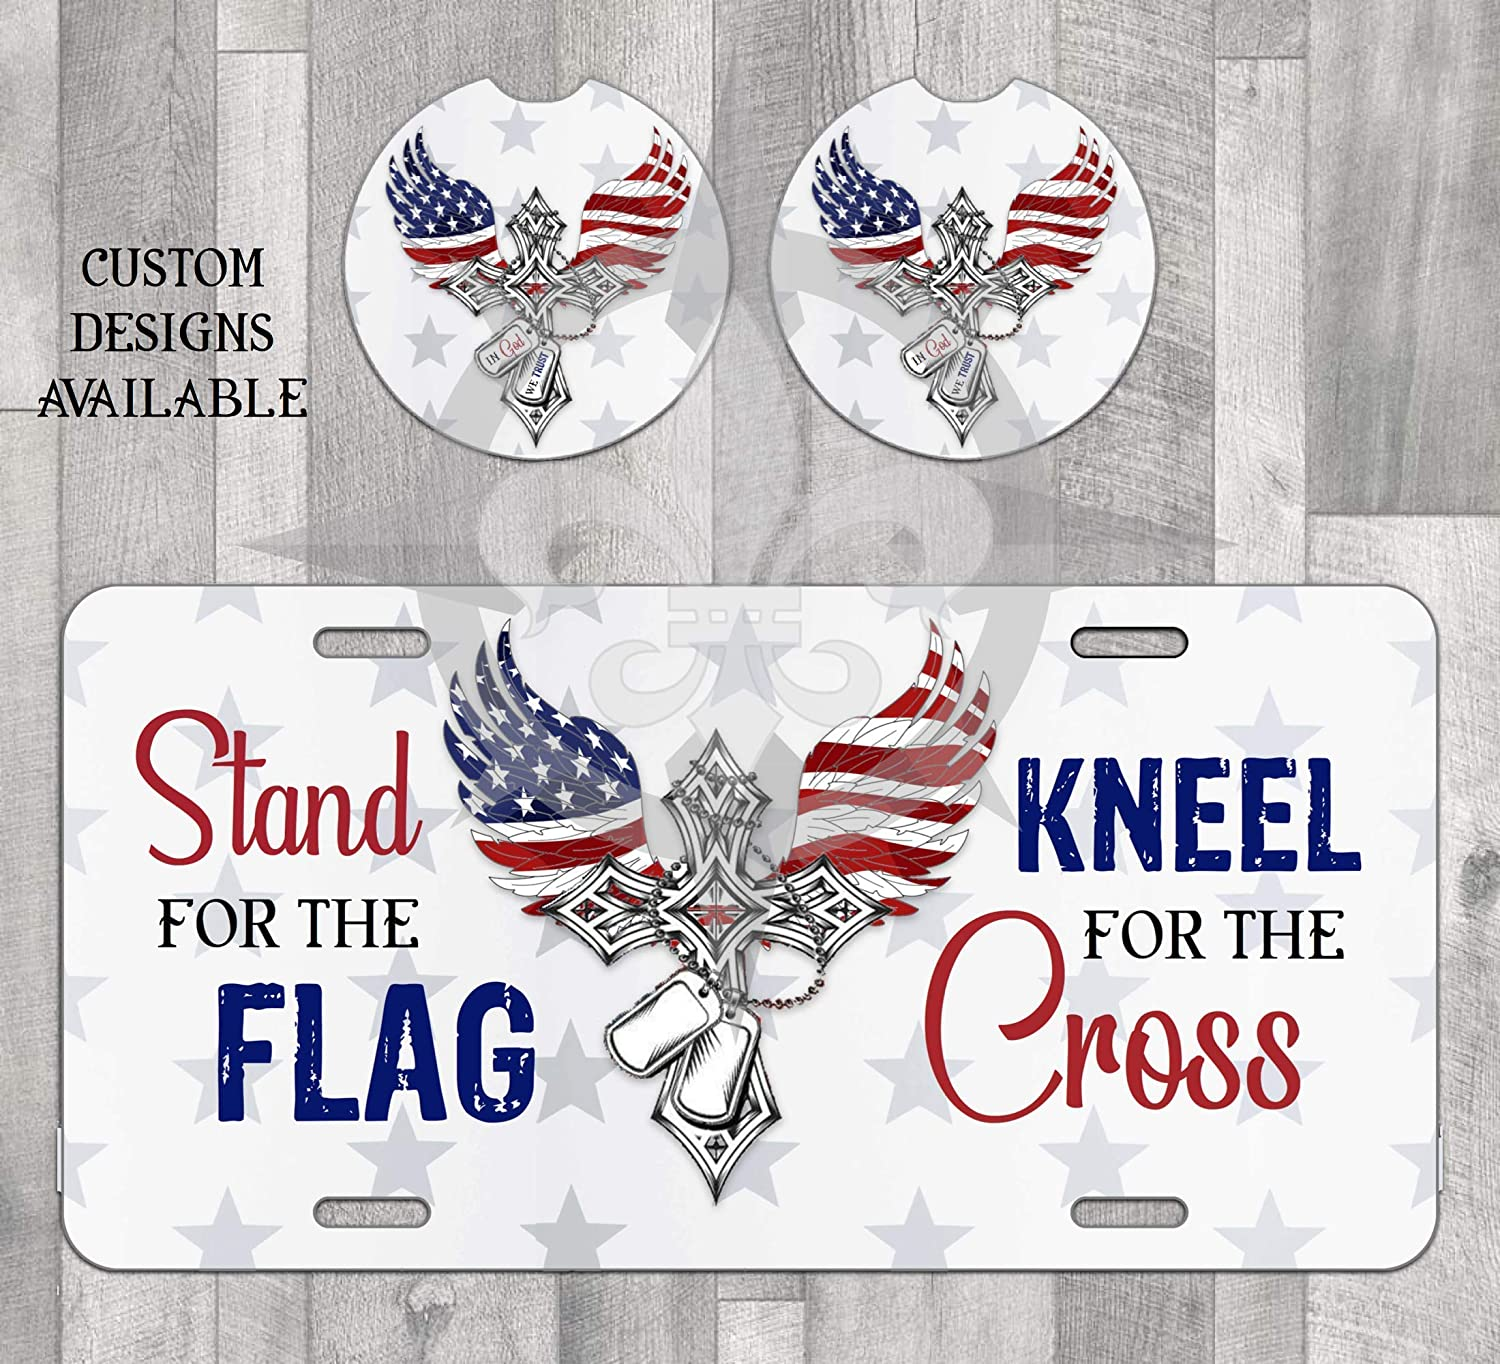 Classic Max 76% OFF American Cross License Plate and Car for Flag the Stand coasters